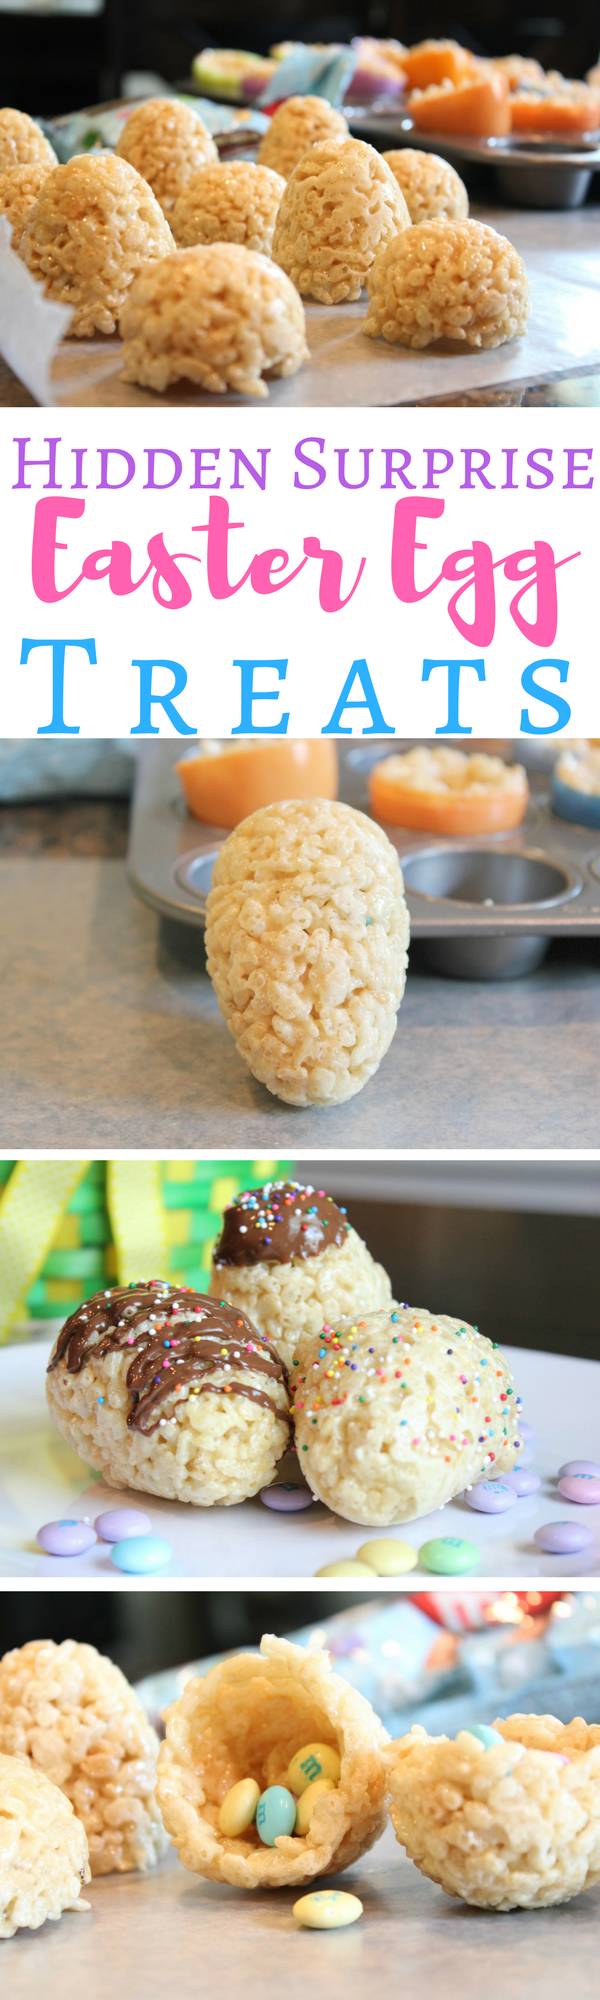 Celebrate Easter in a fun way with these Rice Krispies Hidden Surprise Easter Egg Treats.